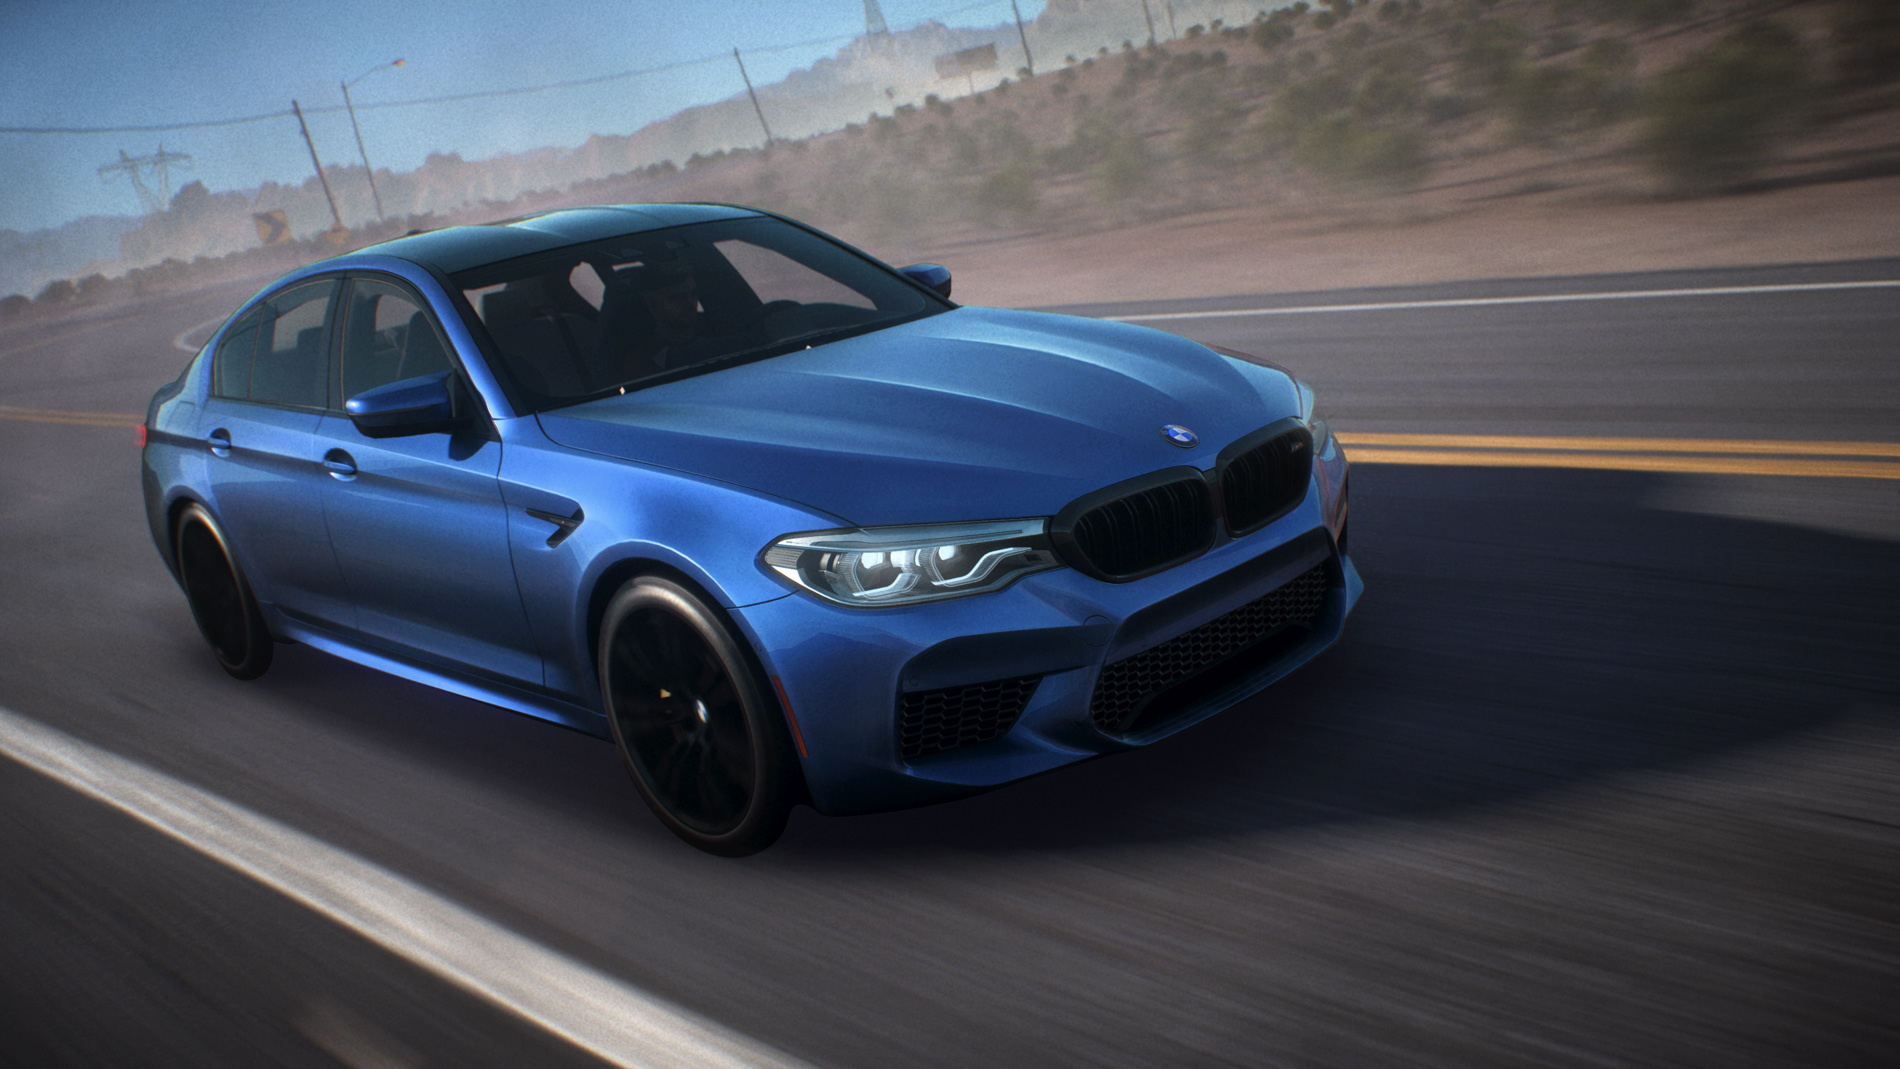 Stunning Fall Wallpapers The All New Bmw M5 In Need For Speed Payback